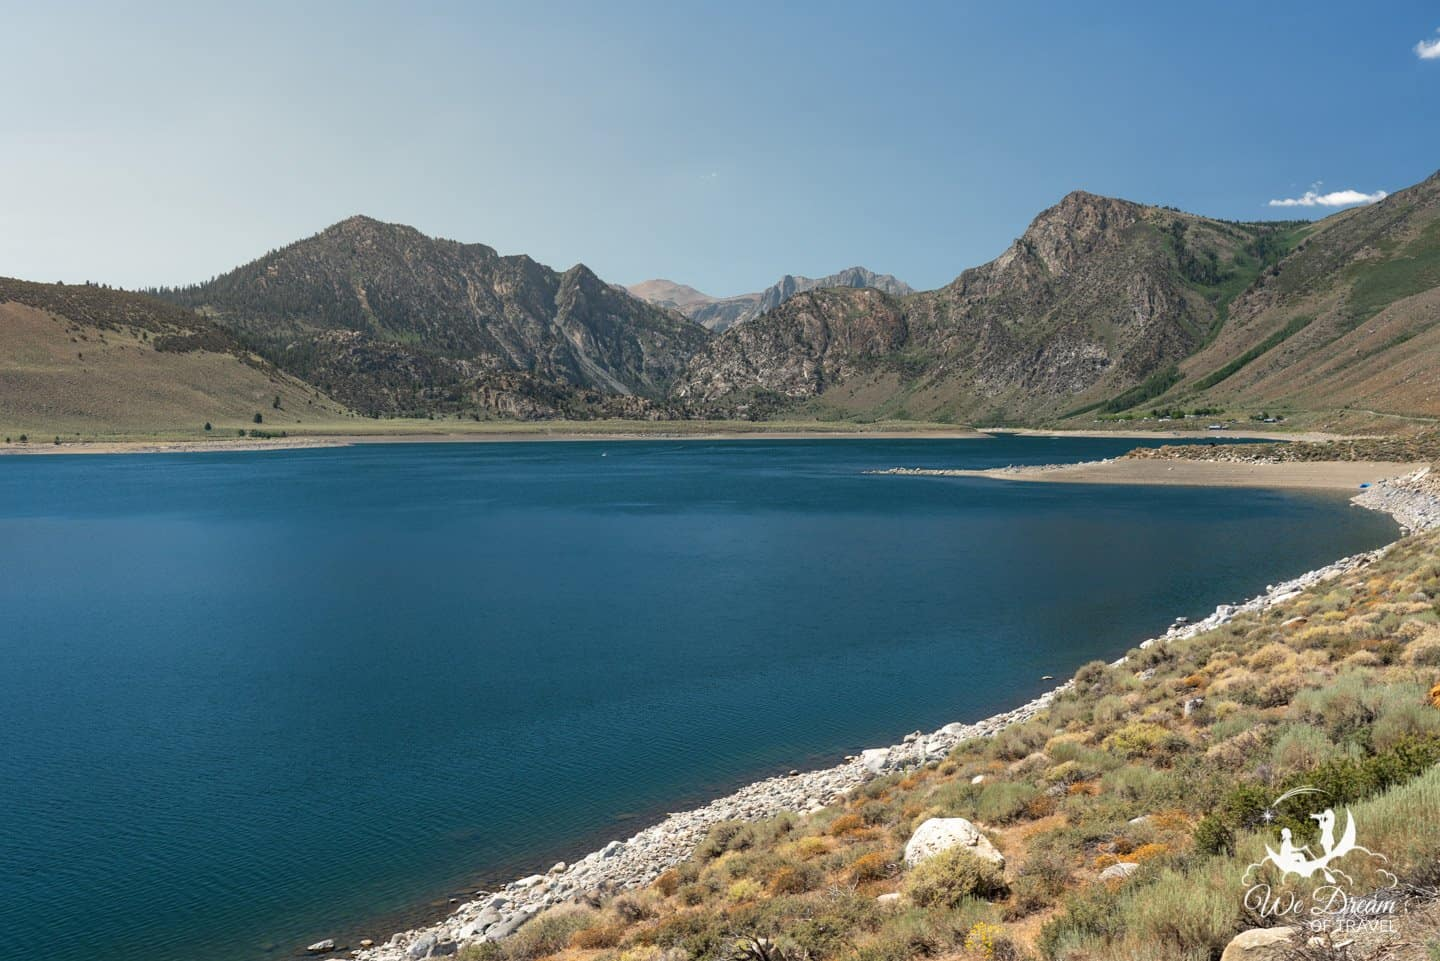 Grant Lake is the largest and first stop on the June Lakes Loop drive.